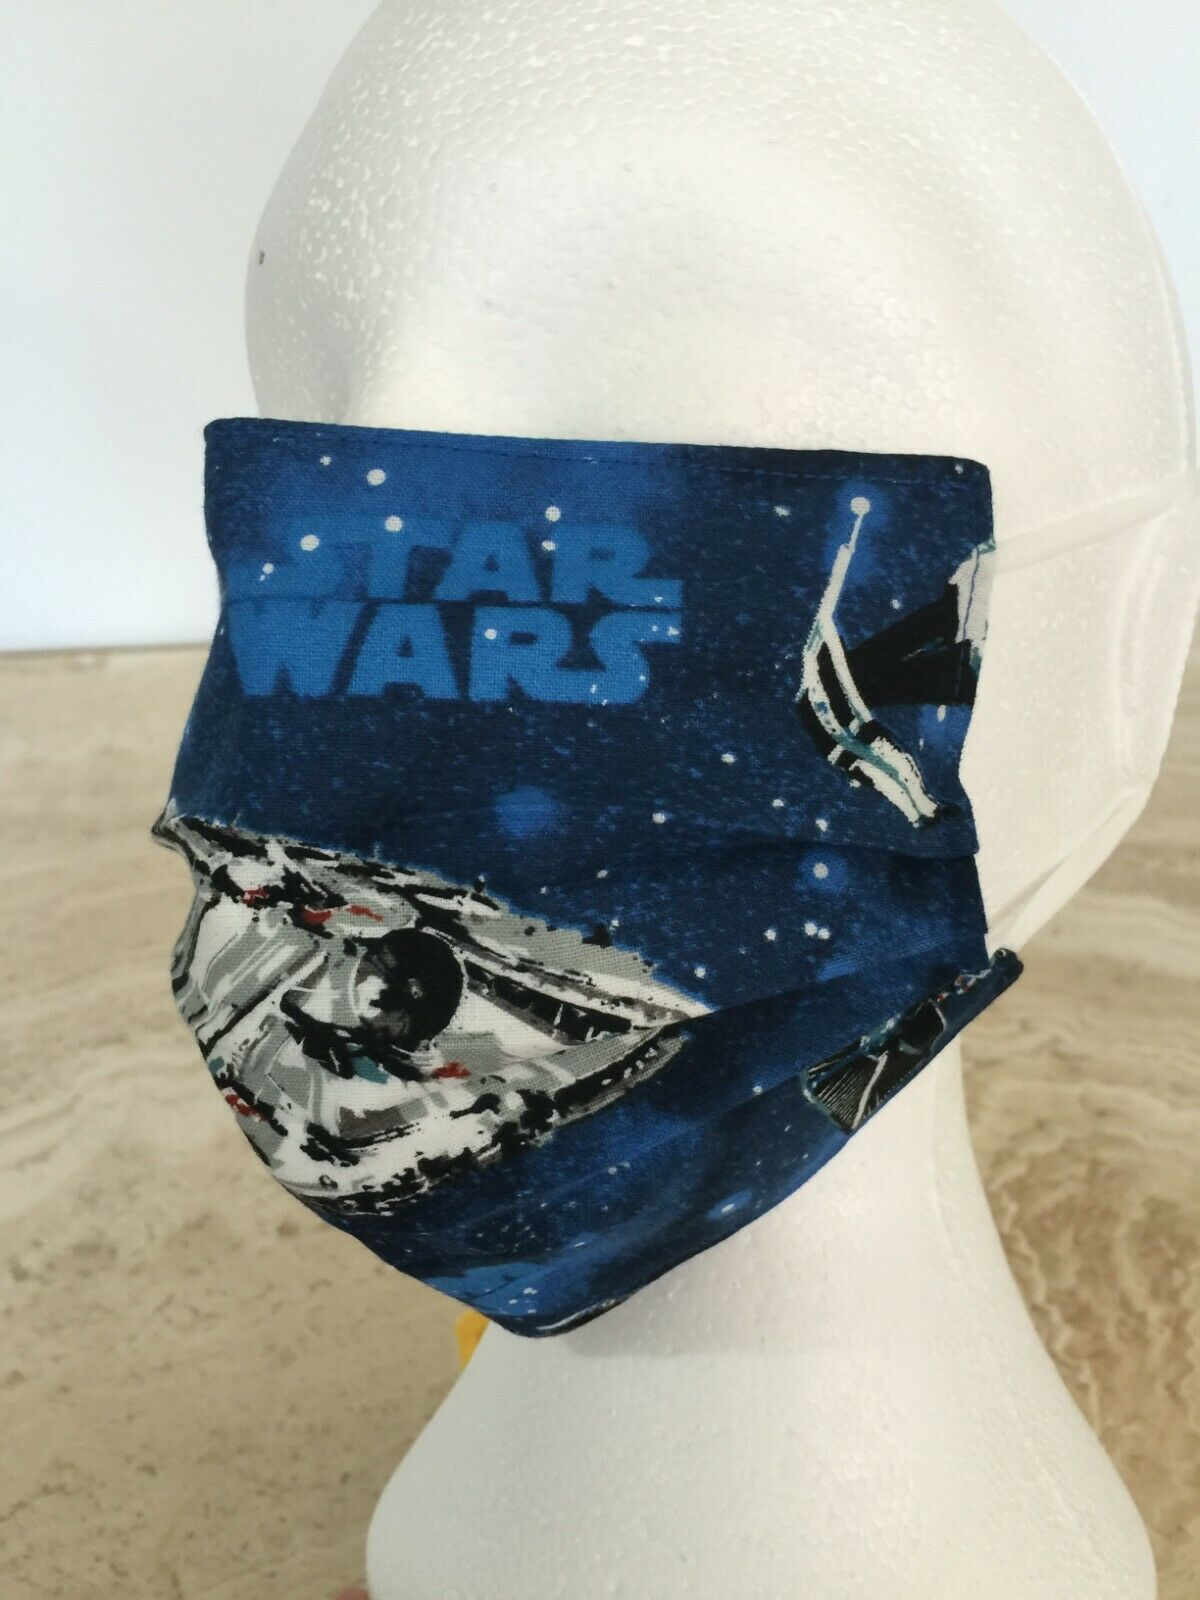 Star Wars Face Mask Millennium Falcon, X-Wing adjustable ear cords and nose wire